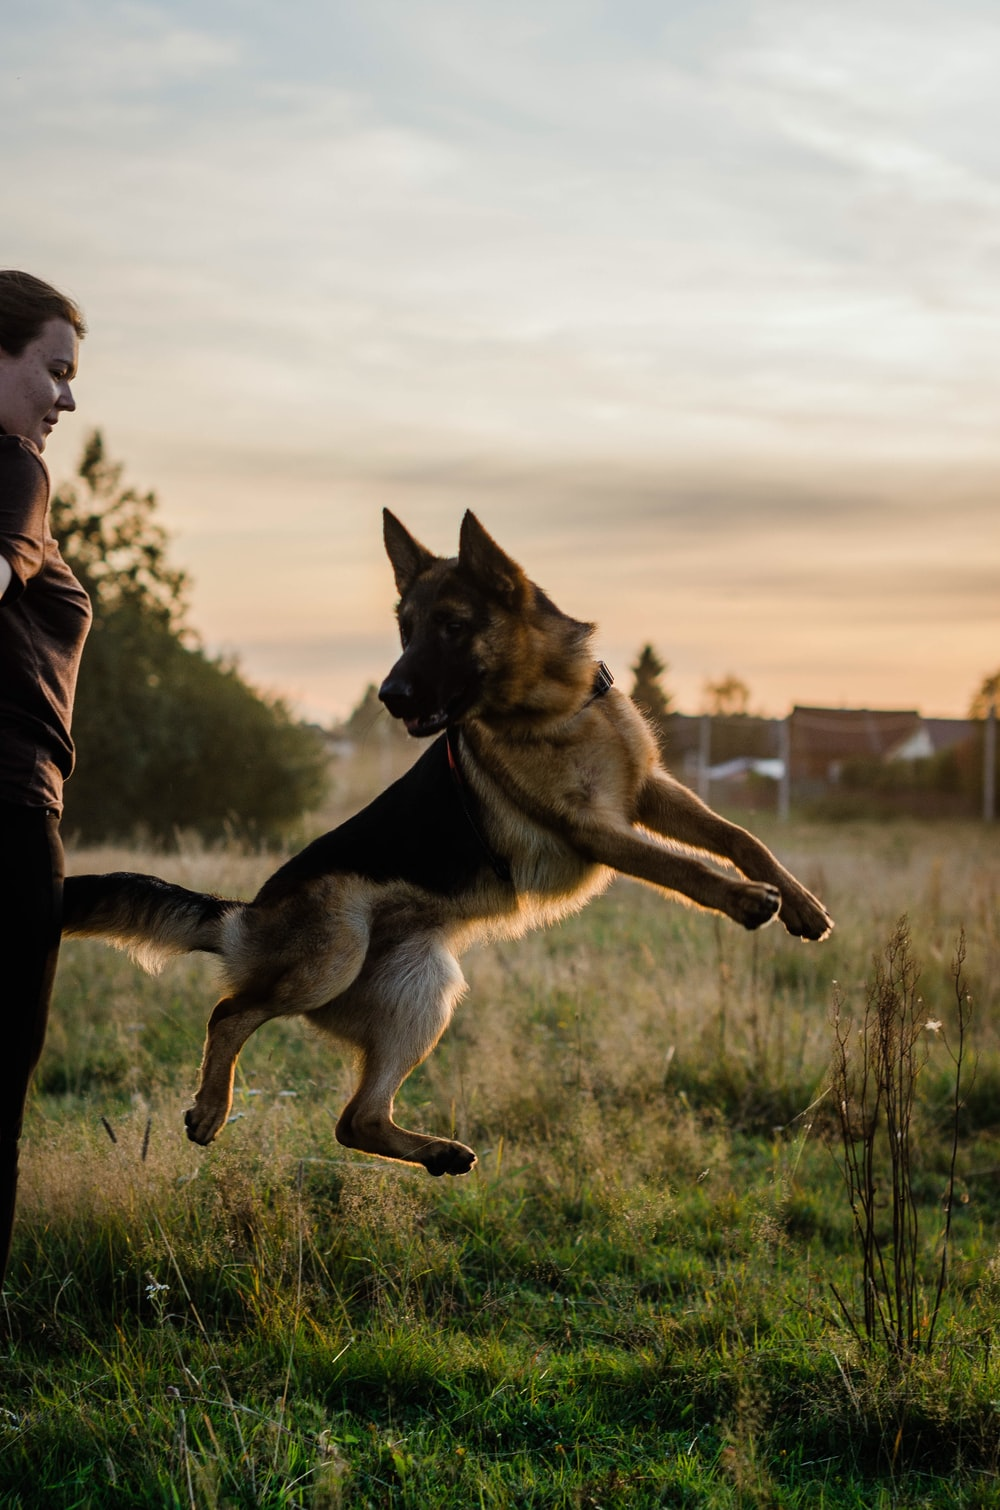 Training Your Dog: Tips On How To Go About It